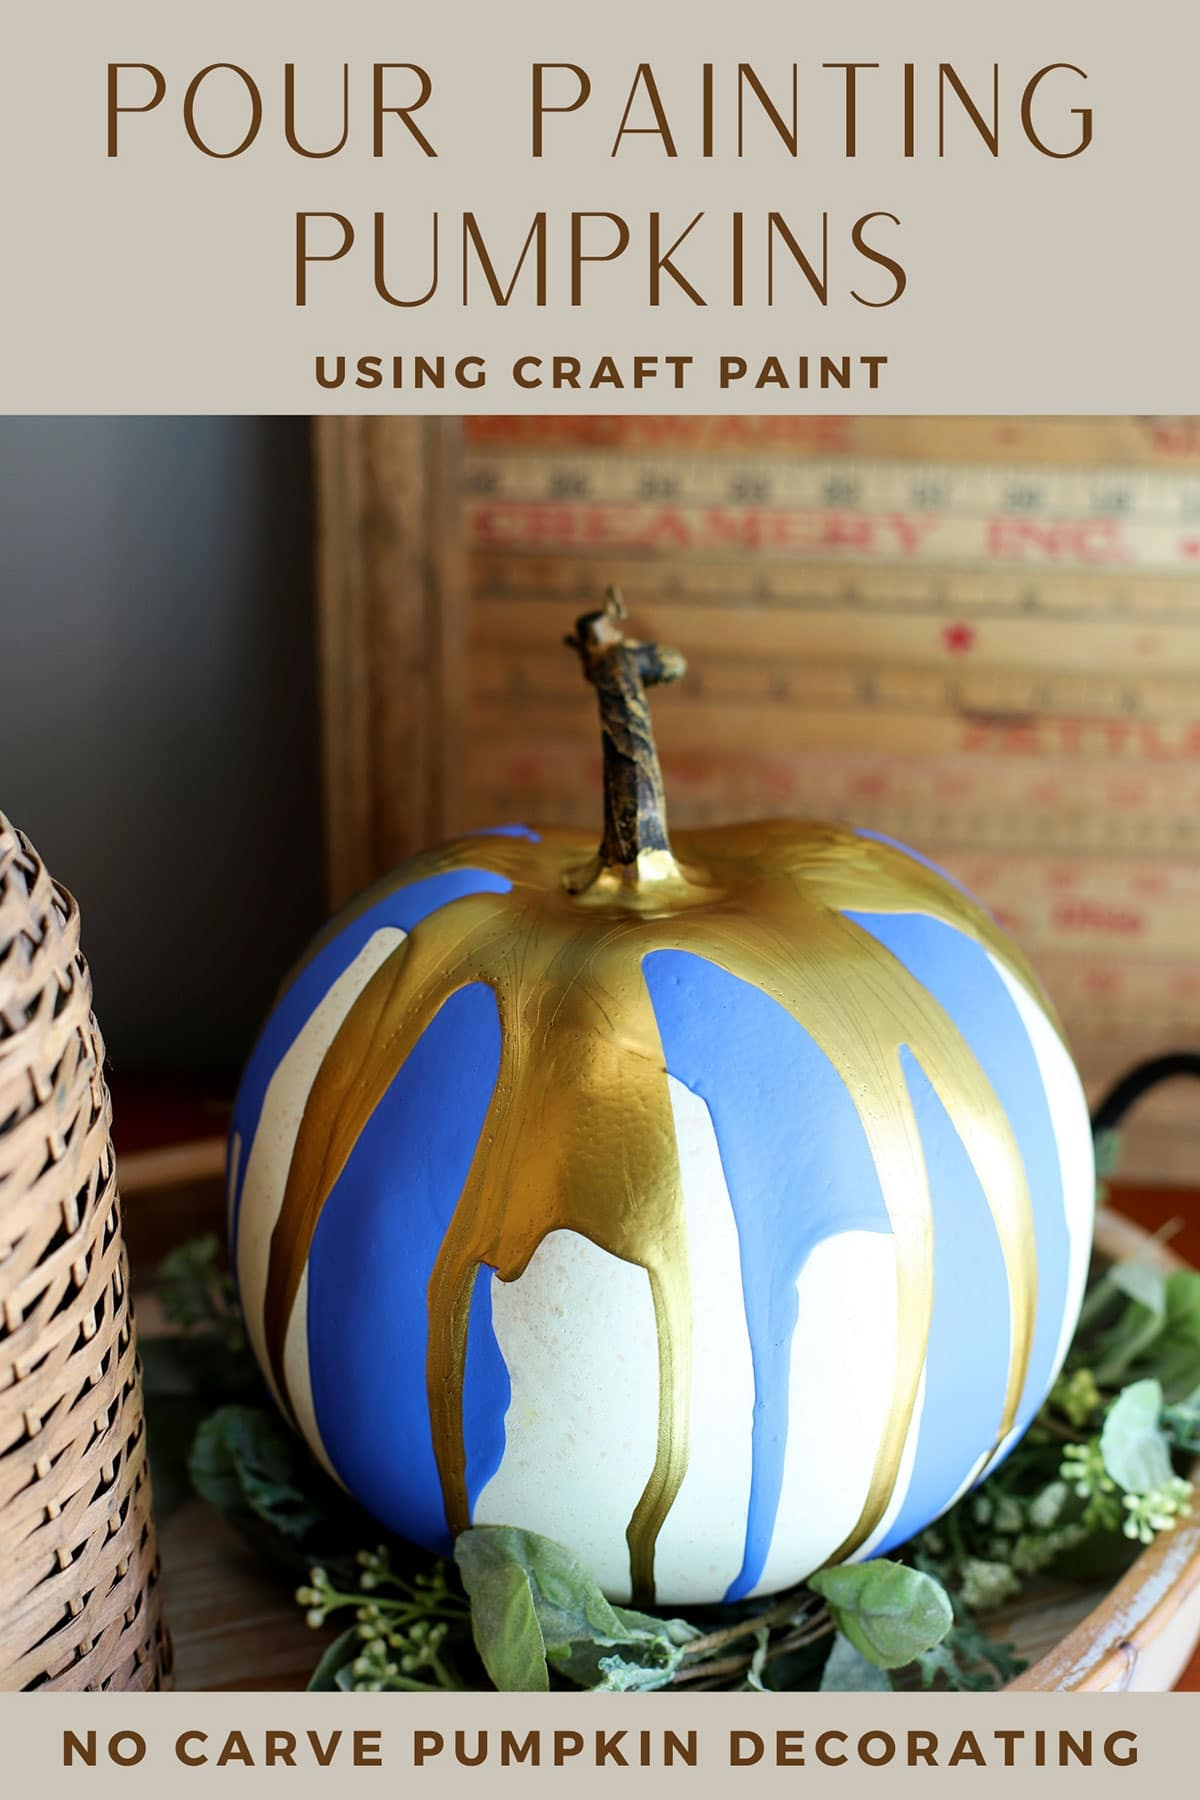 Pour painting a pumpkin for fall decor.